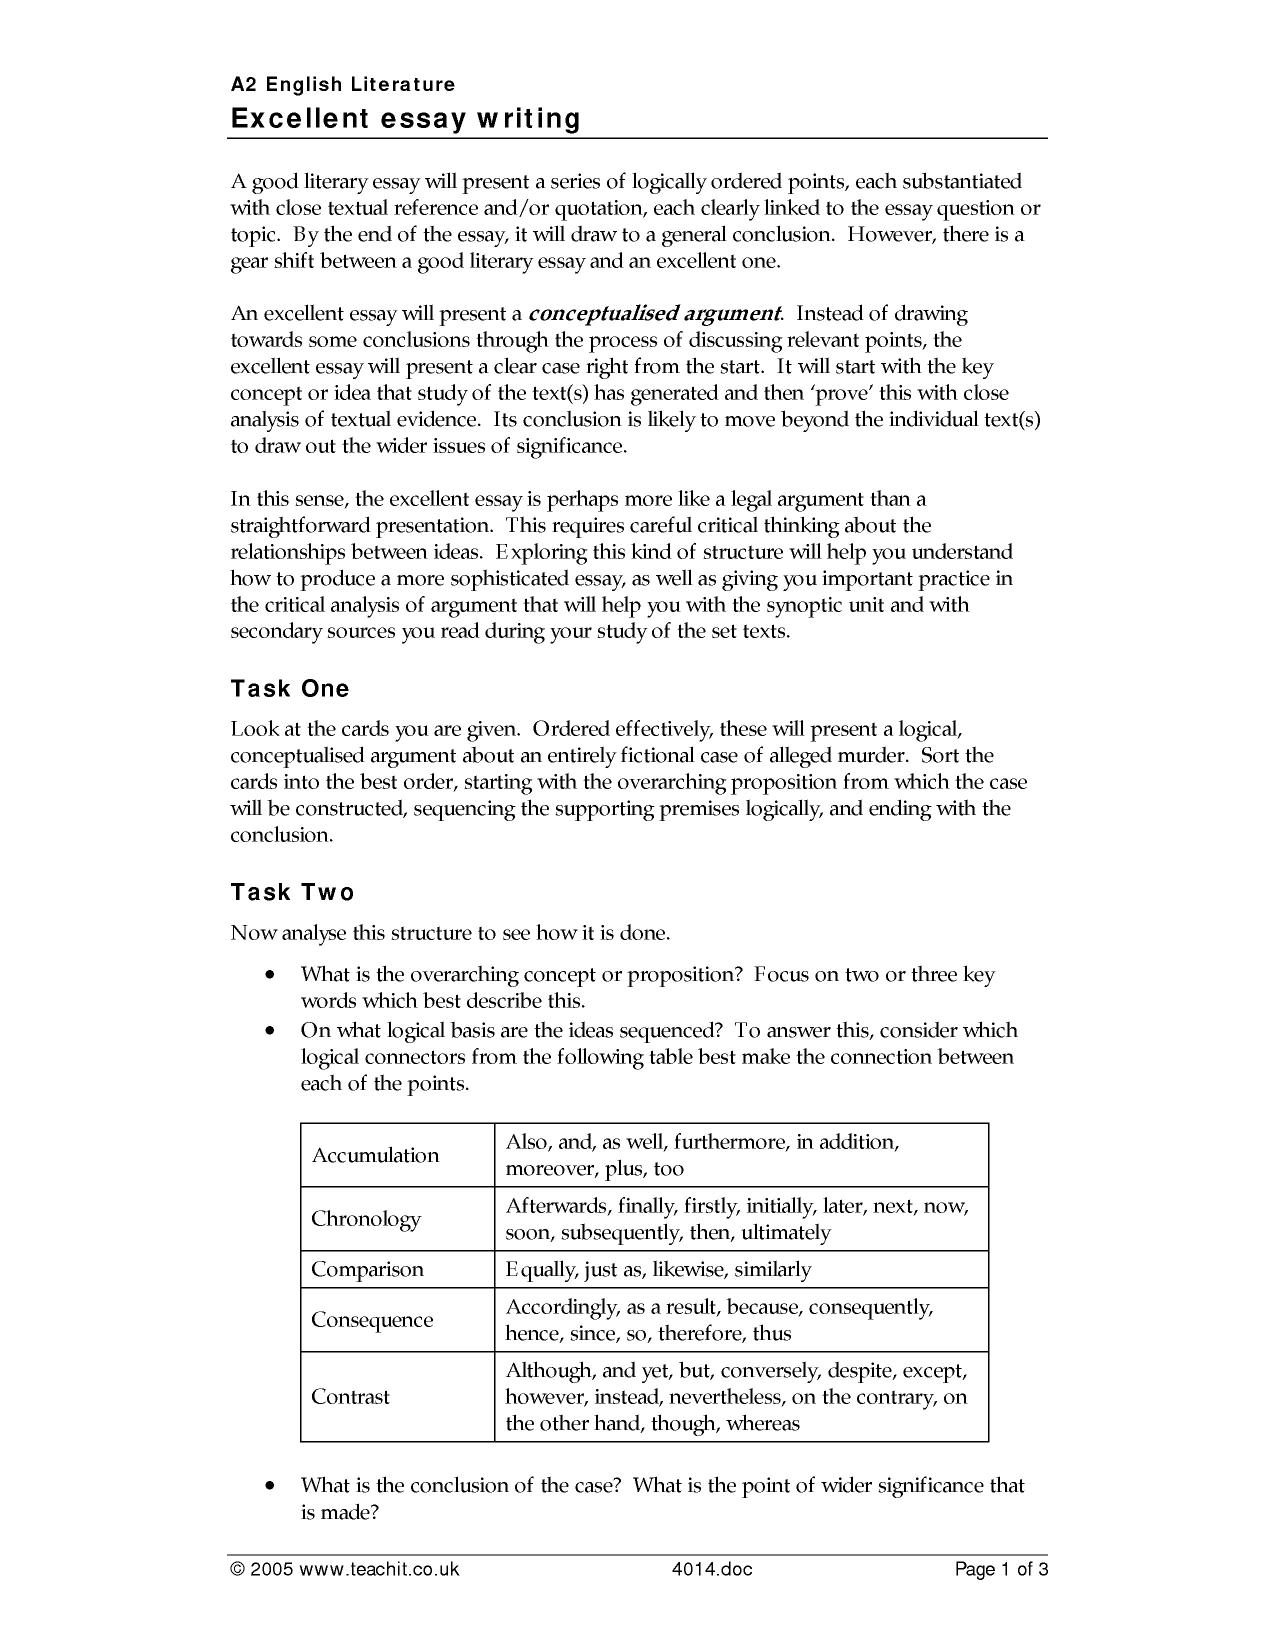 essay writing skills key stage english literature key 4 preview